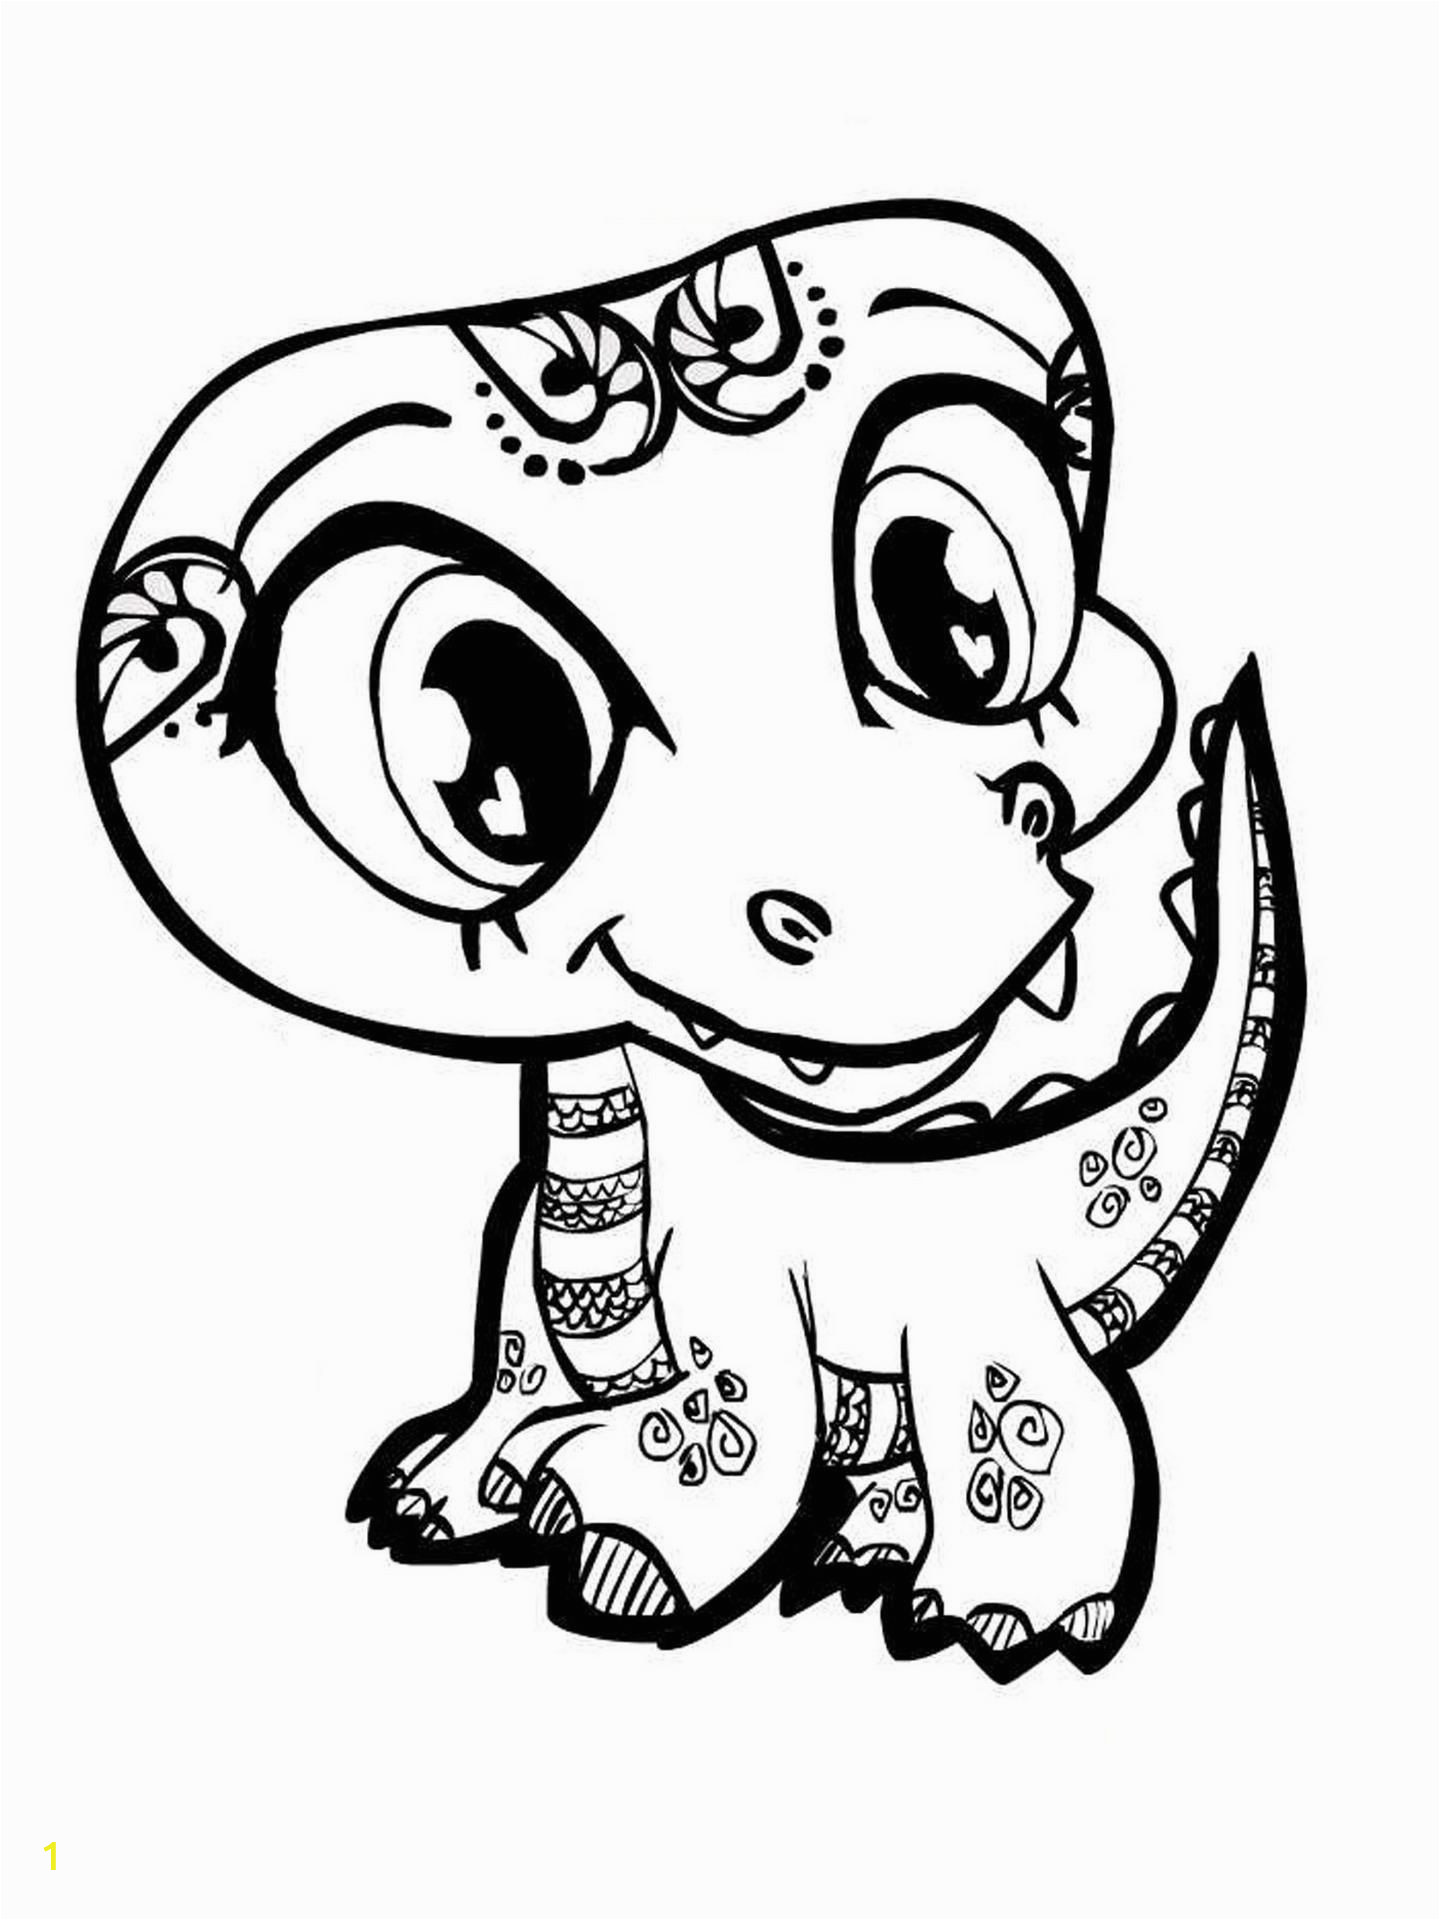 Cool Coloring Pages for Teenage Girl Cool Coloring Pages for Teenage Girls at Getcolorings